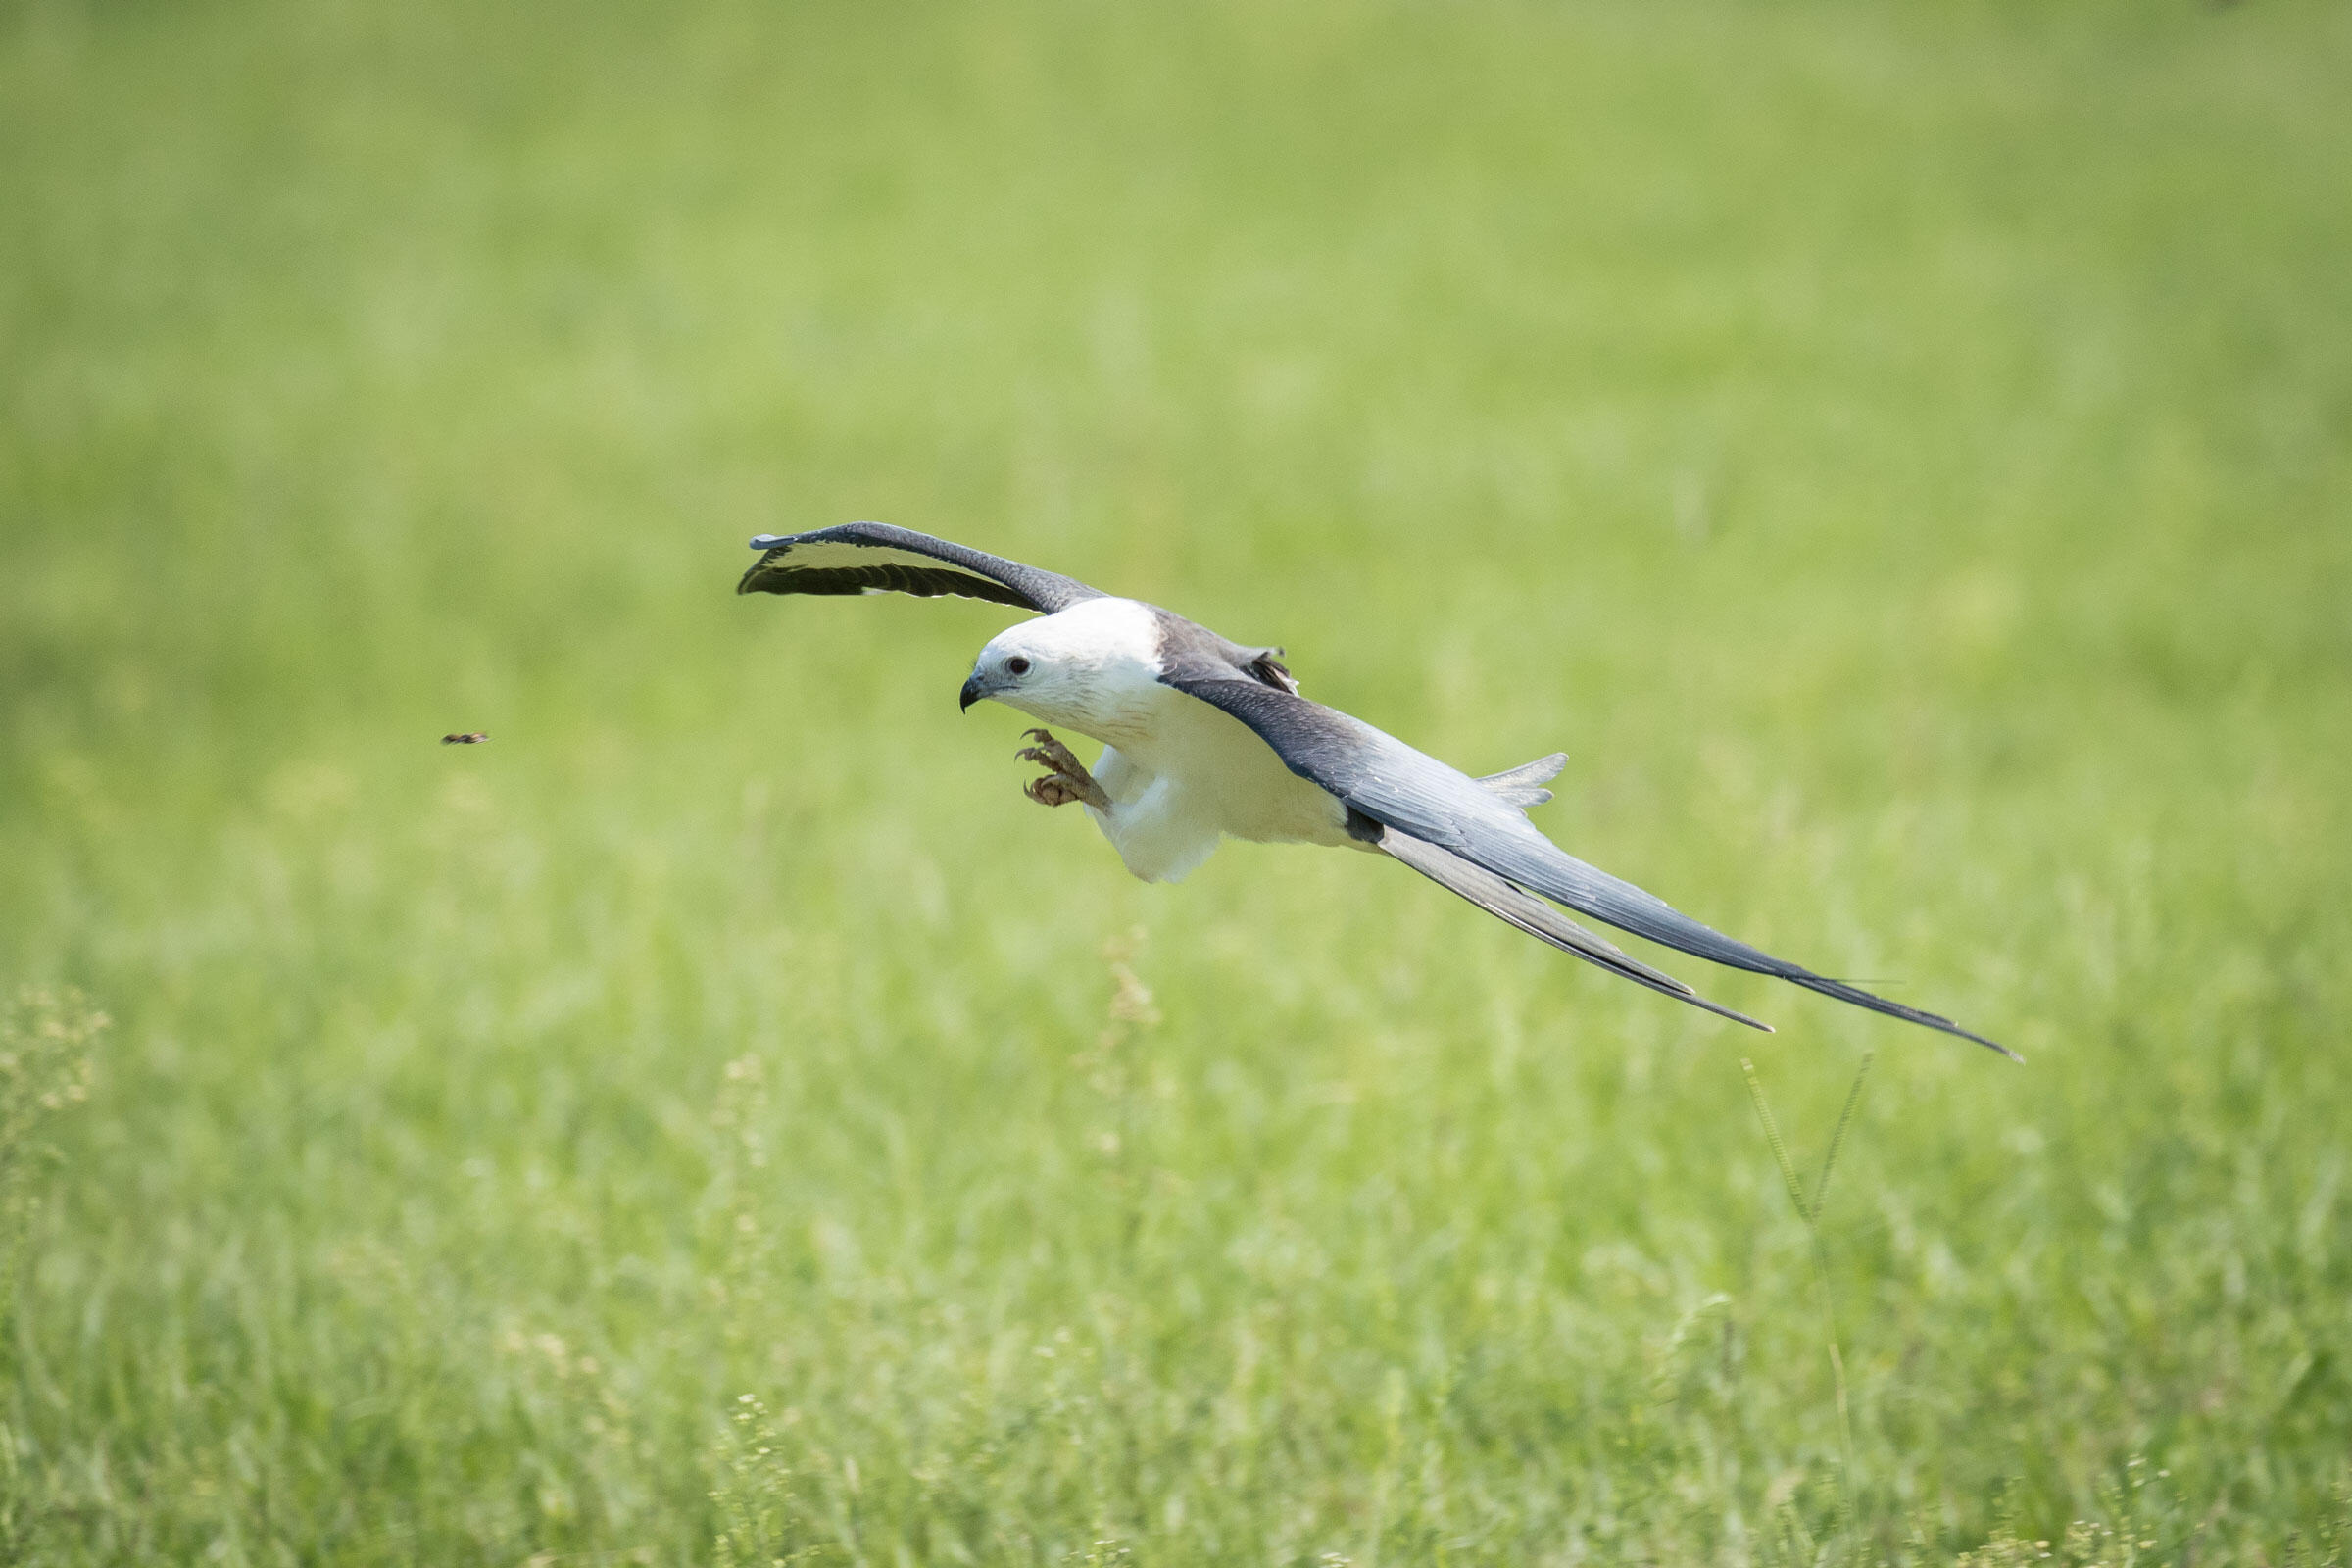 A Swallow-tailed Kite steadies for impact with a flying insect in an agricultural field in central Florida. Mac Stone